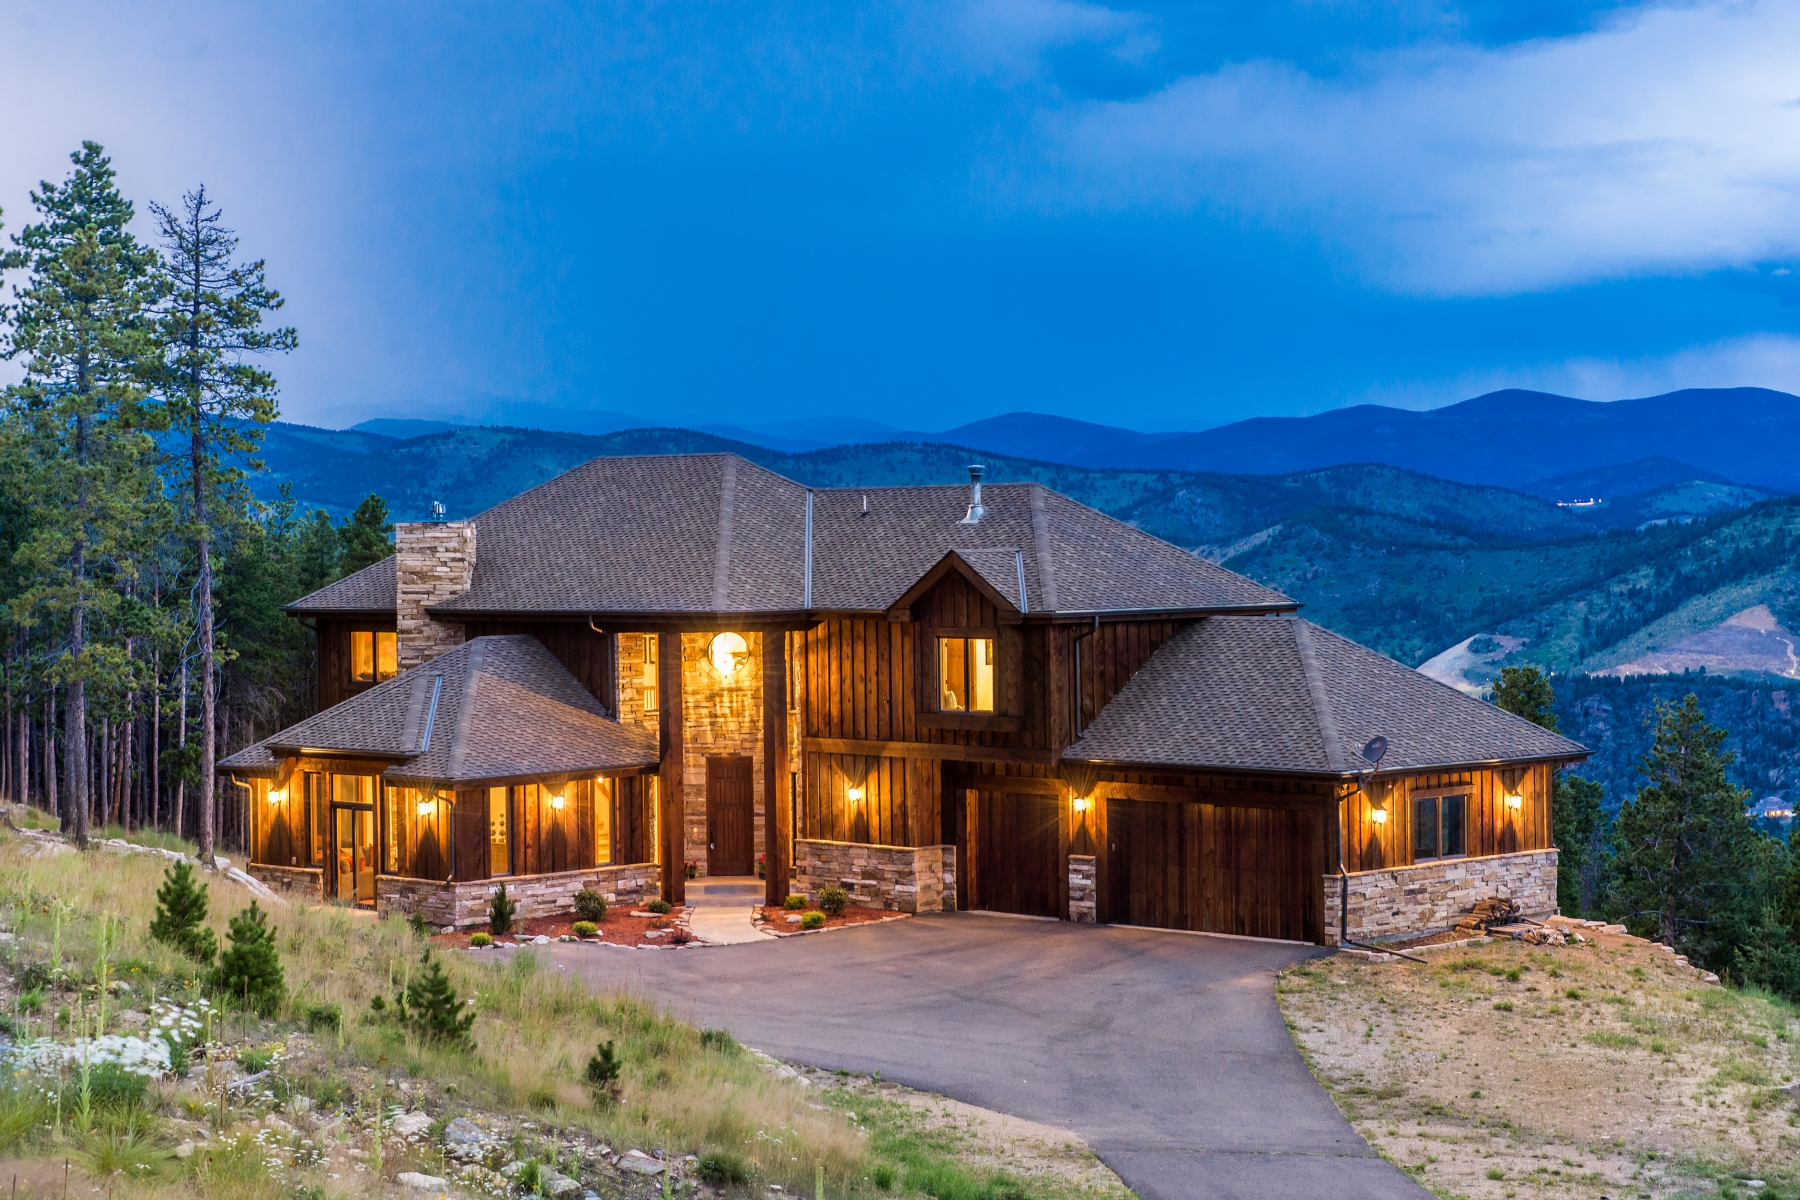 Moradia para Venda às North Evergreen Mountain Retreat 55 Steeldust Lane Evergreen, Colorado, 80439 Estados Unidos